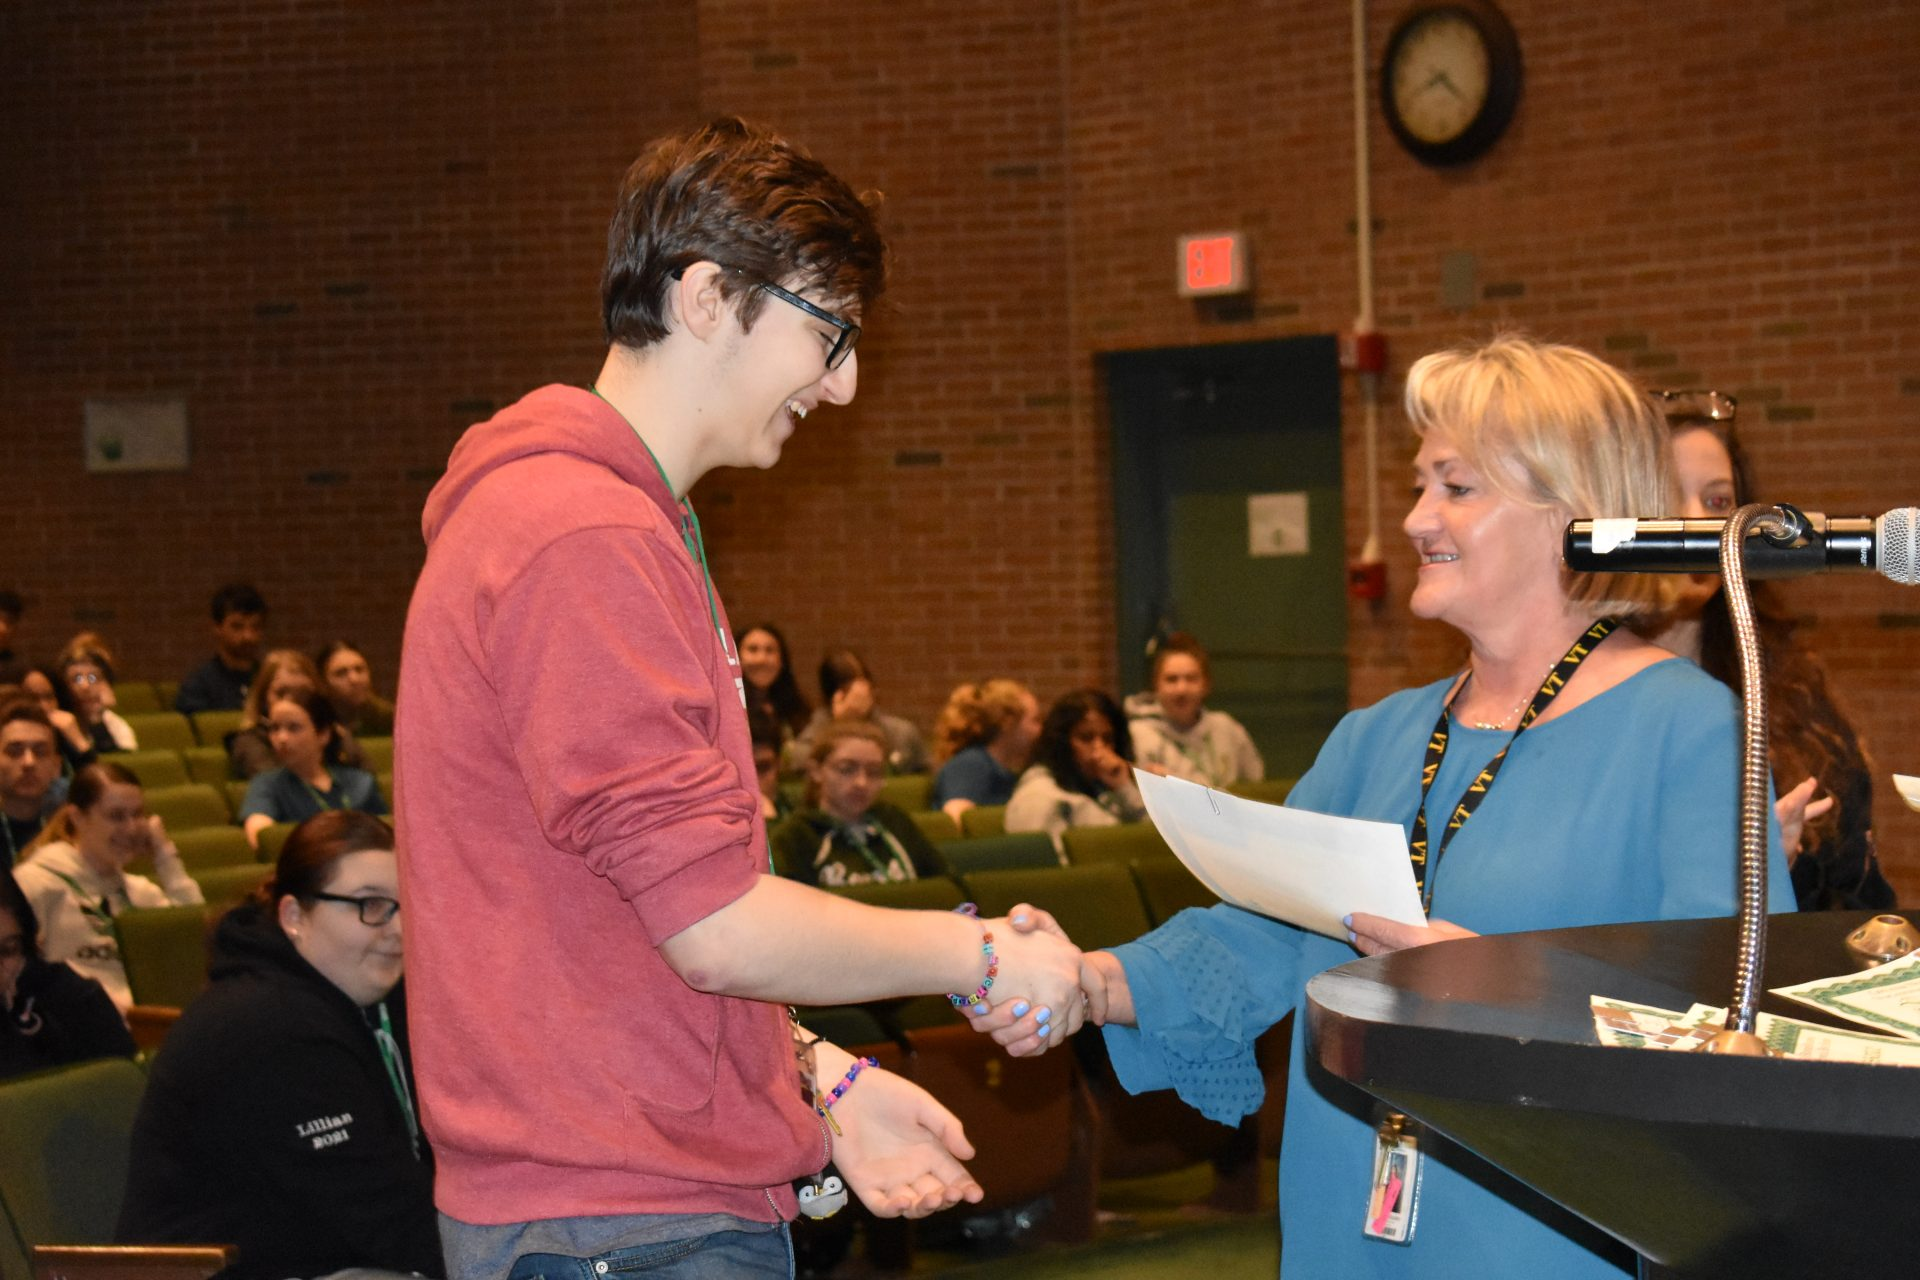 Renaissance Awards Ms. Bouley shaking a students hand